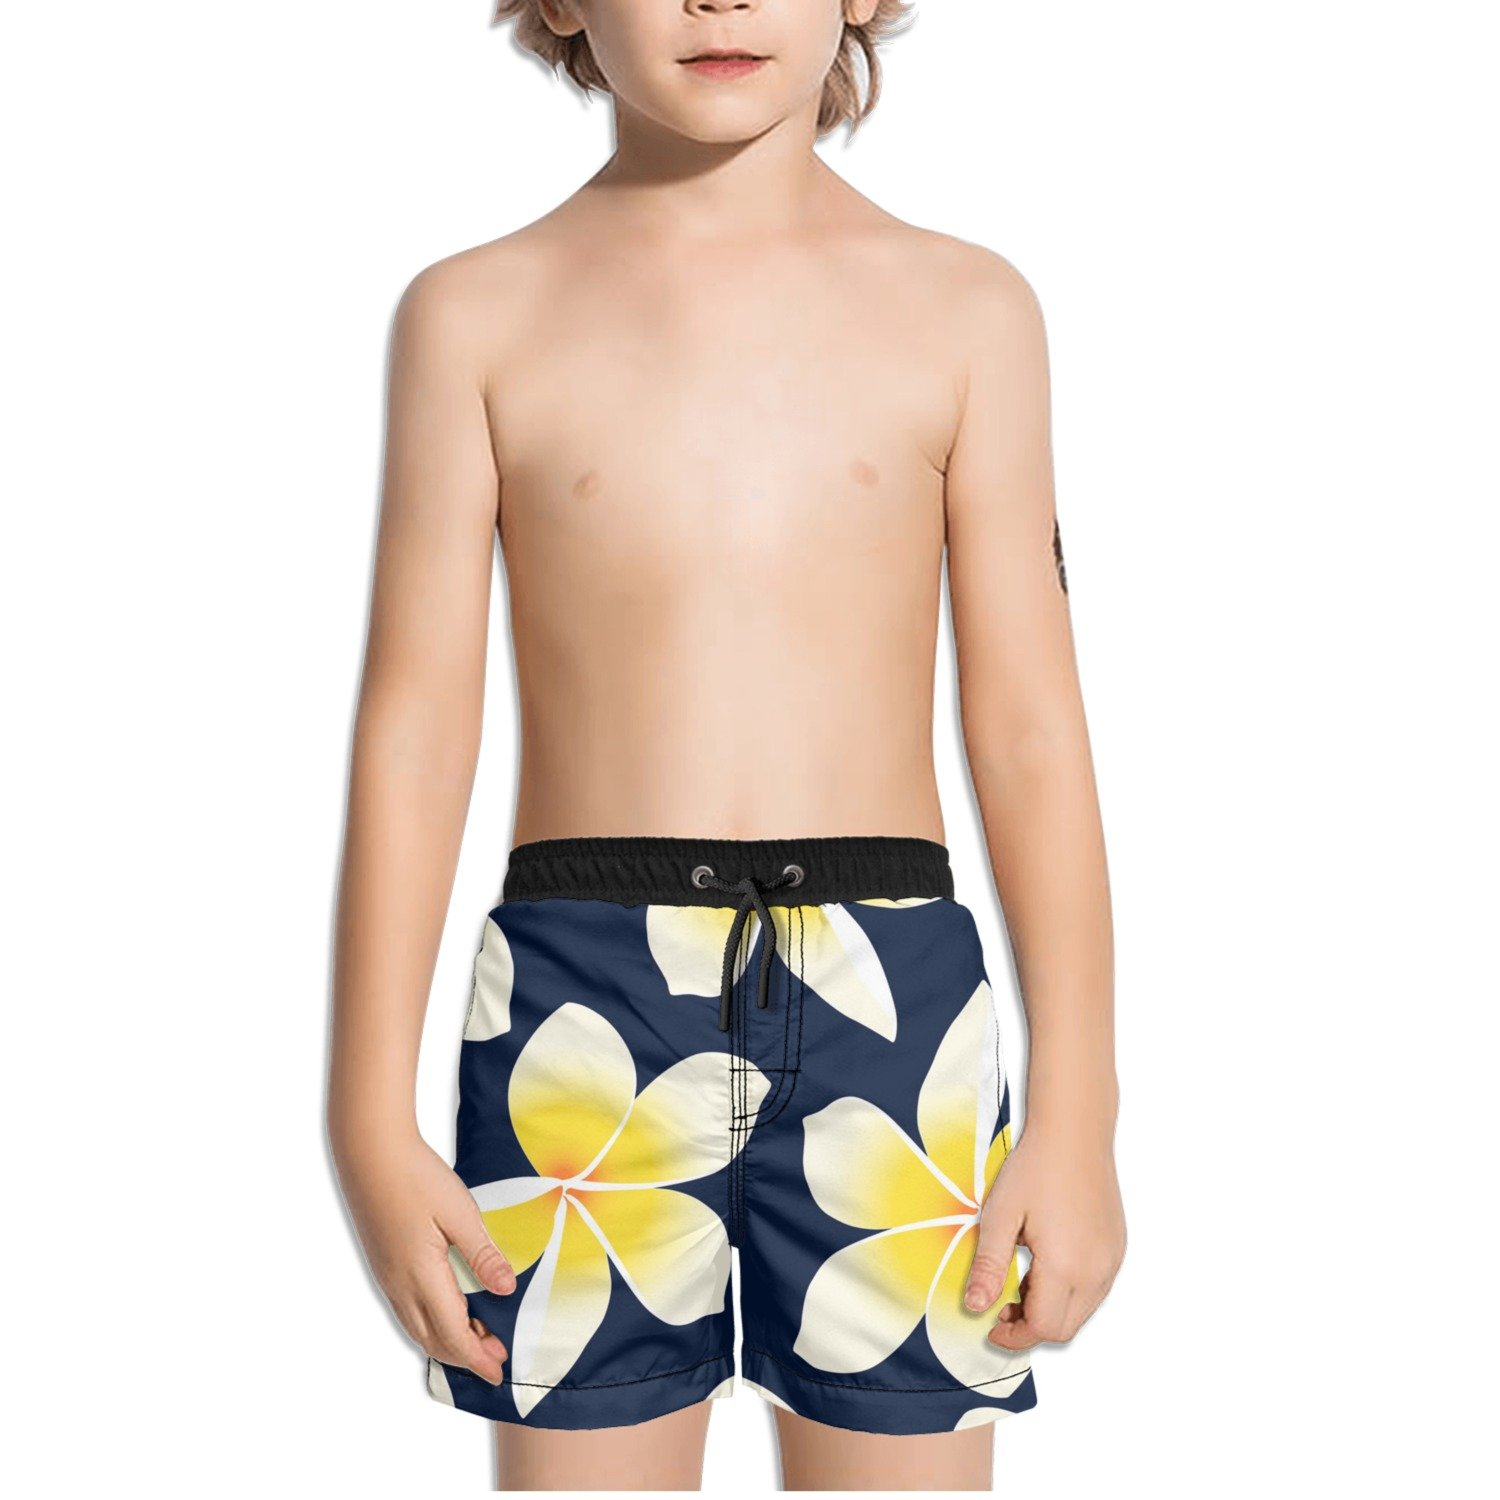 Ouxioaz Boys' Swim Trunk Yellow Flower Tropical Floral Beach Board Shorts